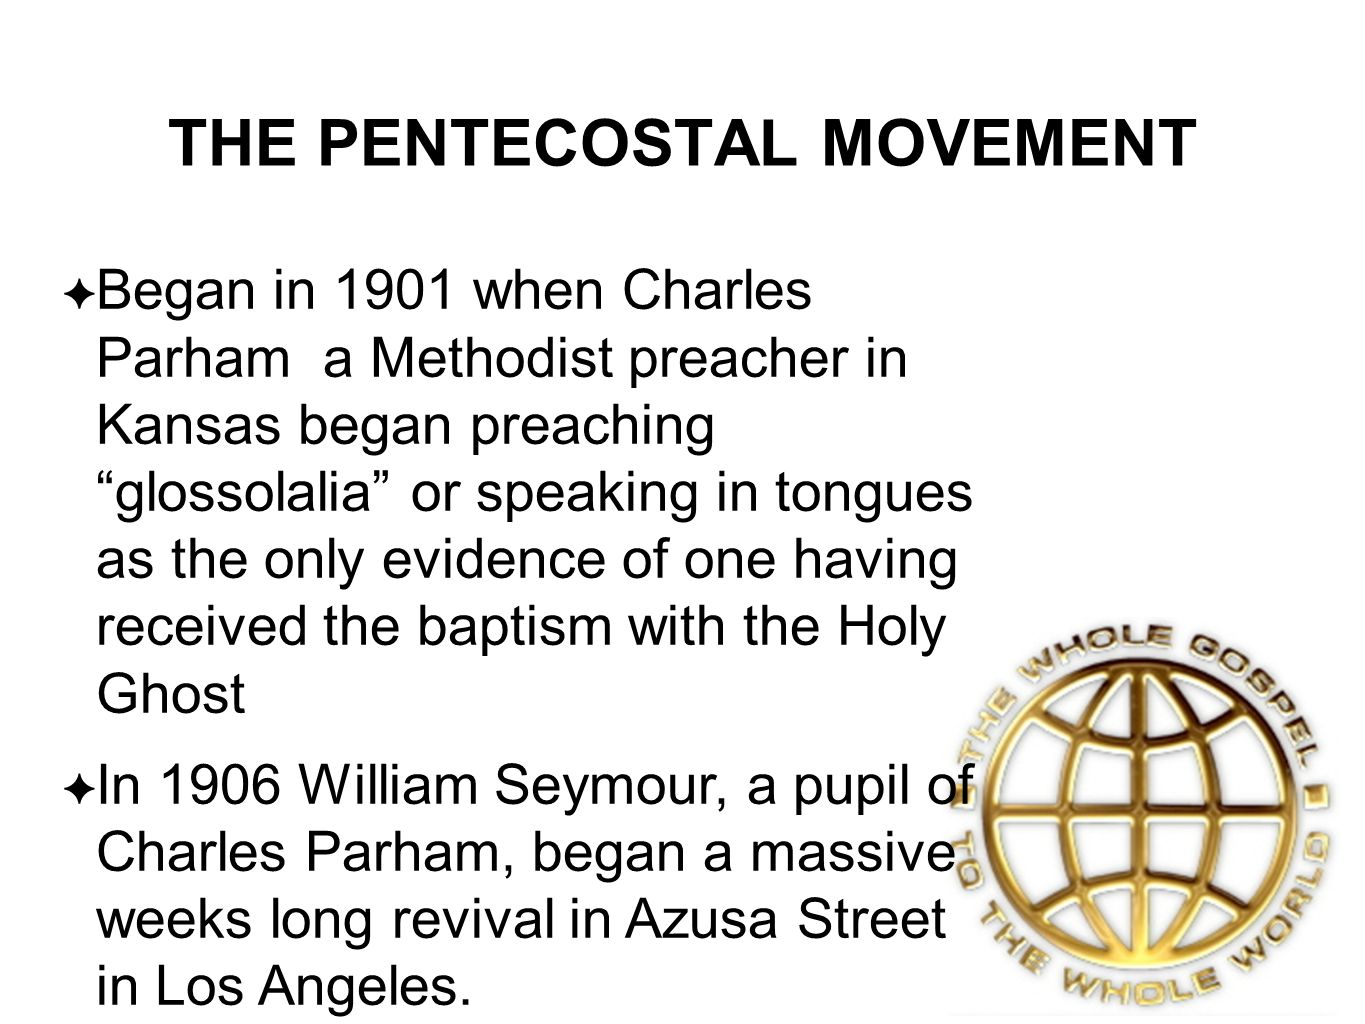 THE PENTECOSTAL MOVEMENT